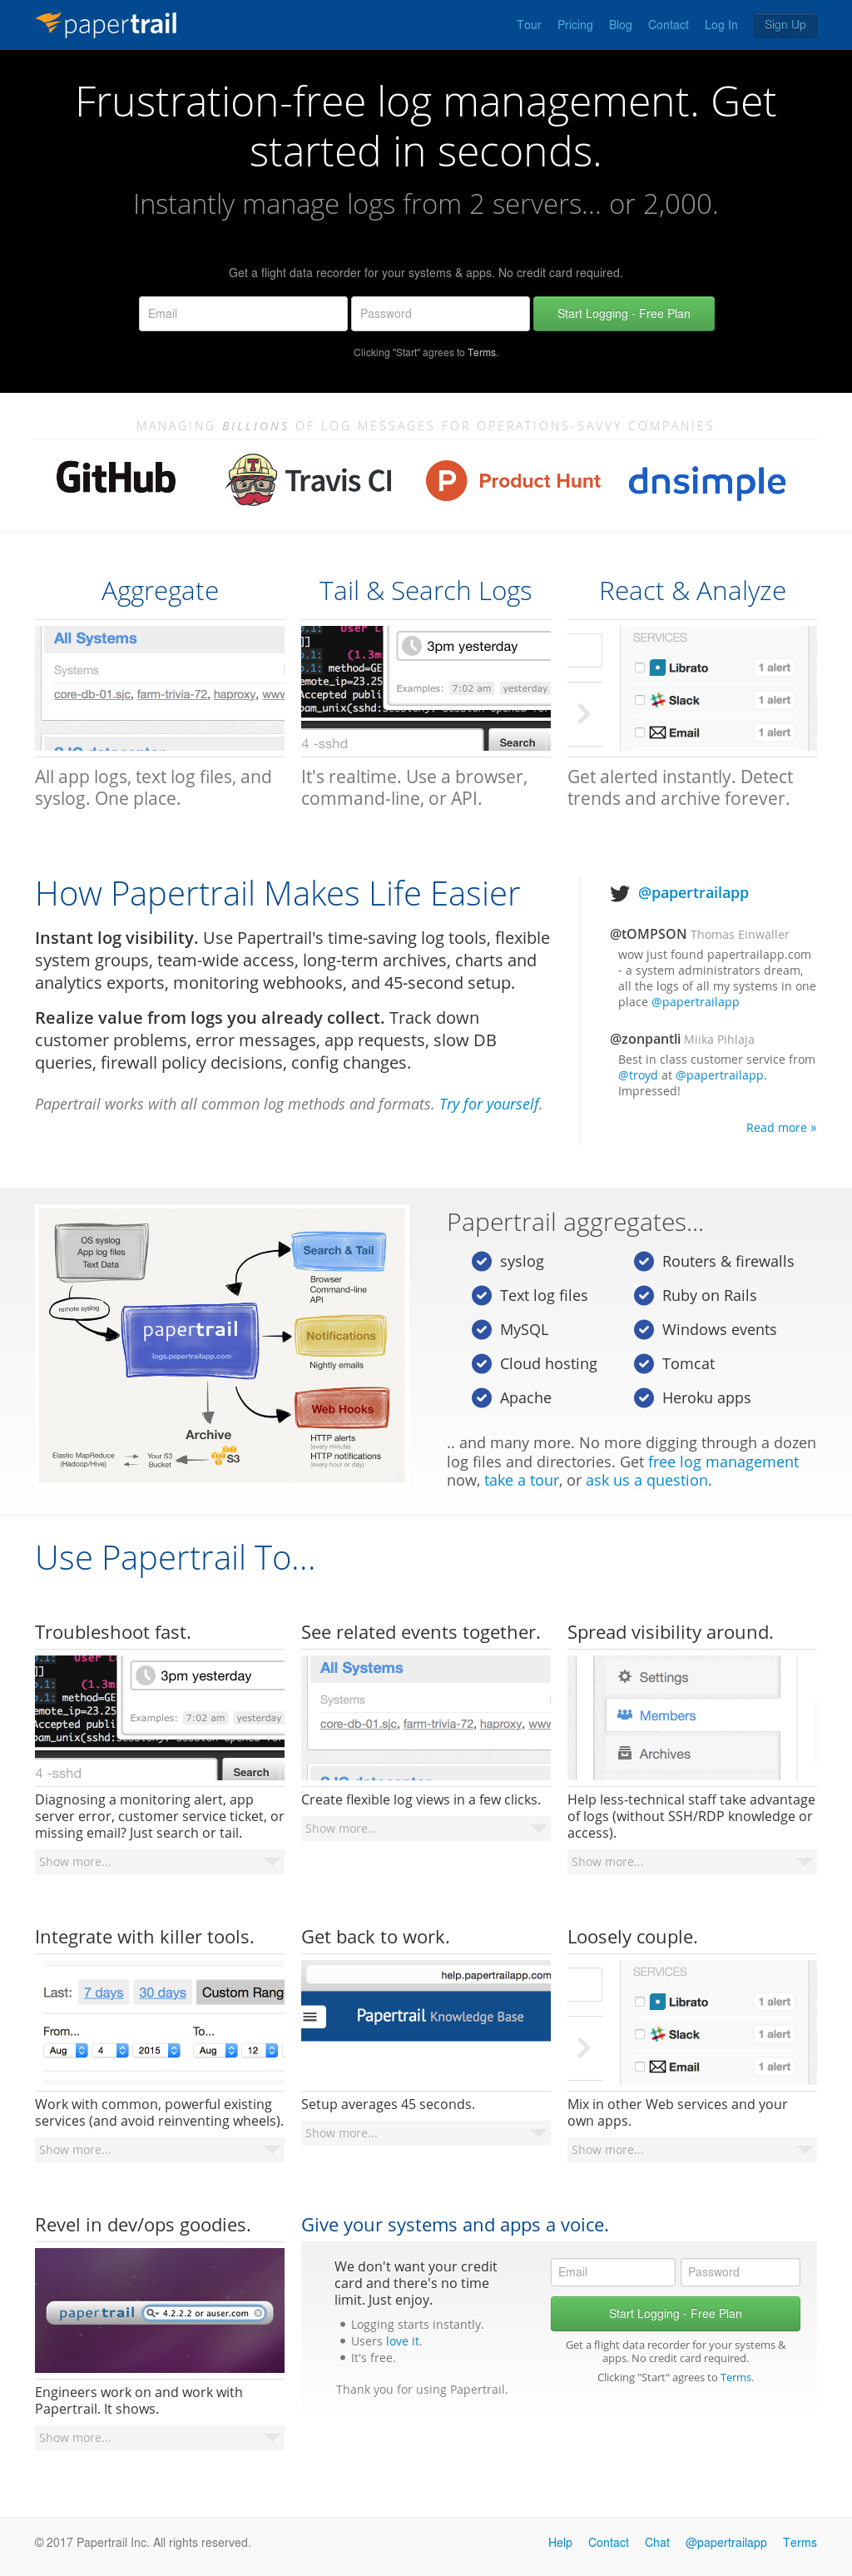 Owler Reports - Papertrail Blog Introduction To Logging In